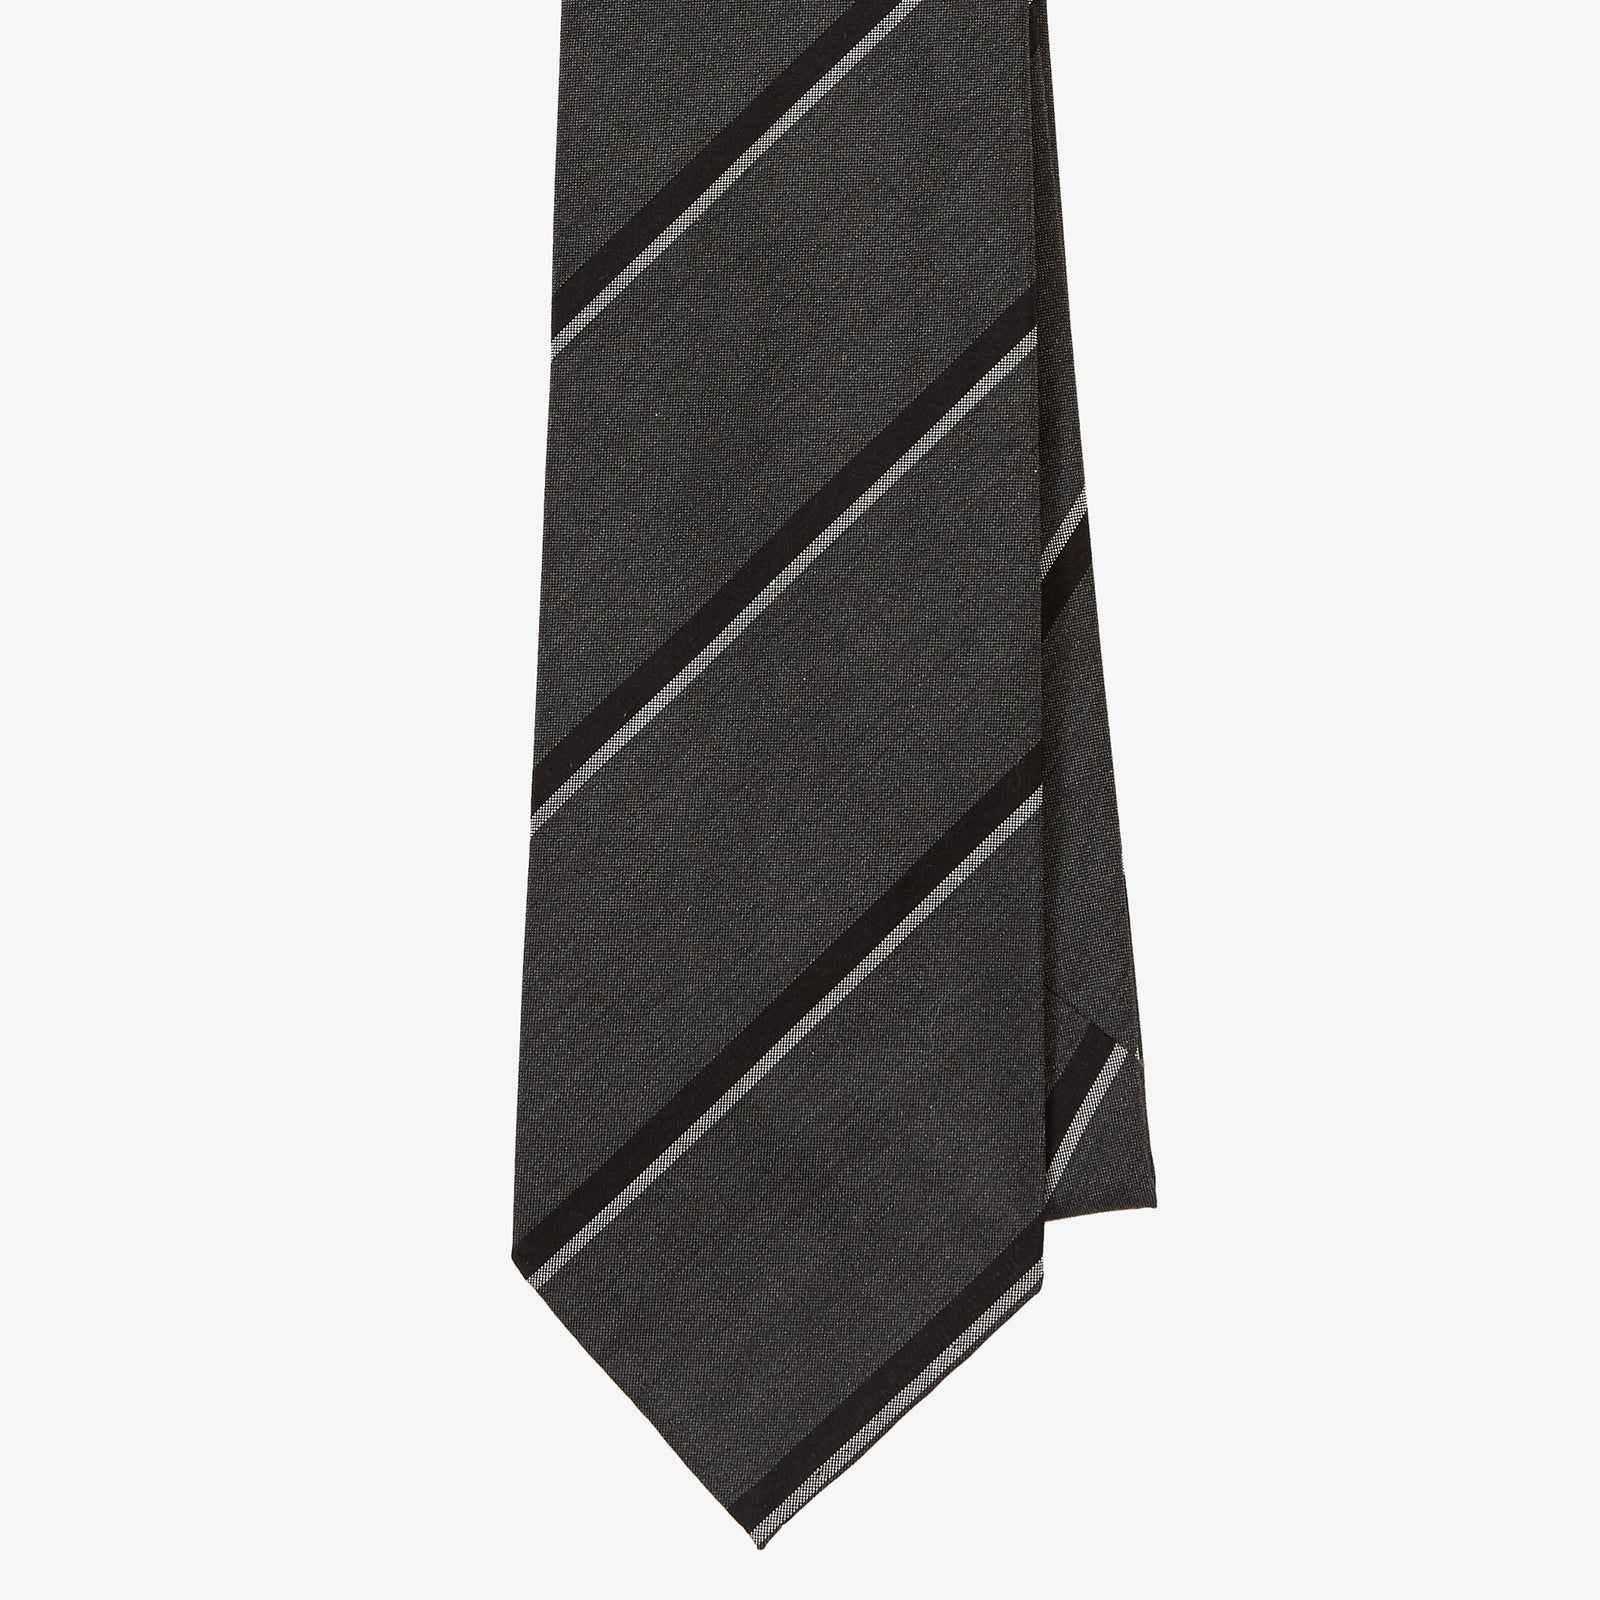 Dry Silk Tie Graphite Black Grey Double Stripe